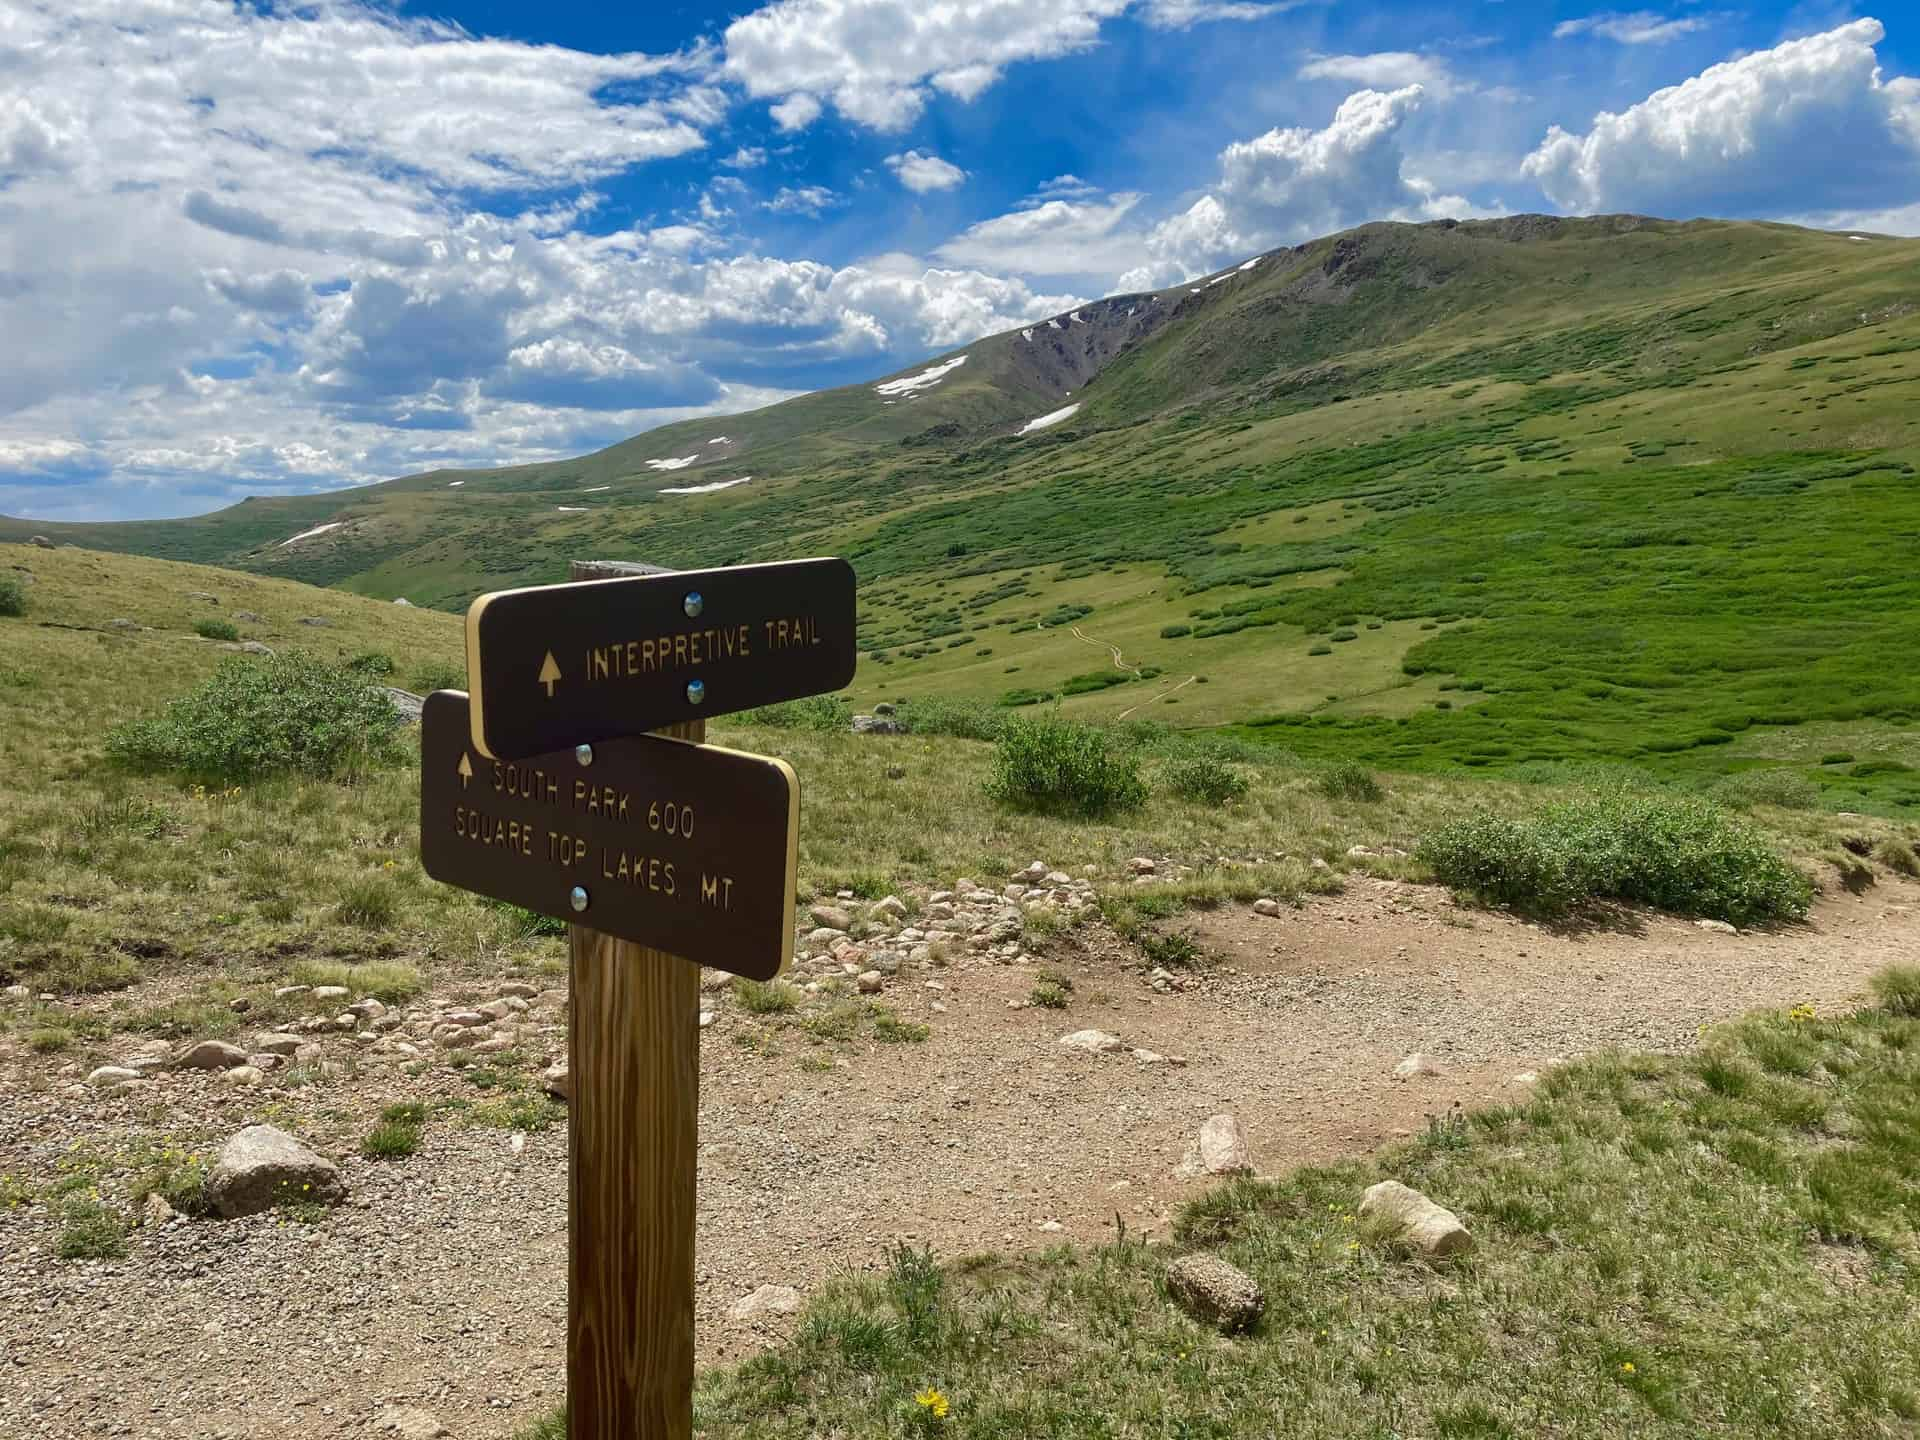 Trail junction for Square Top Lakes Trail